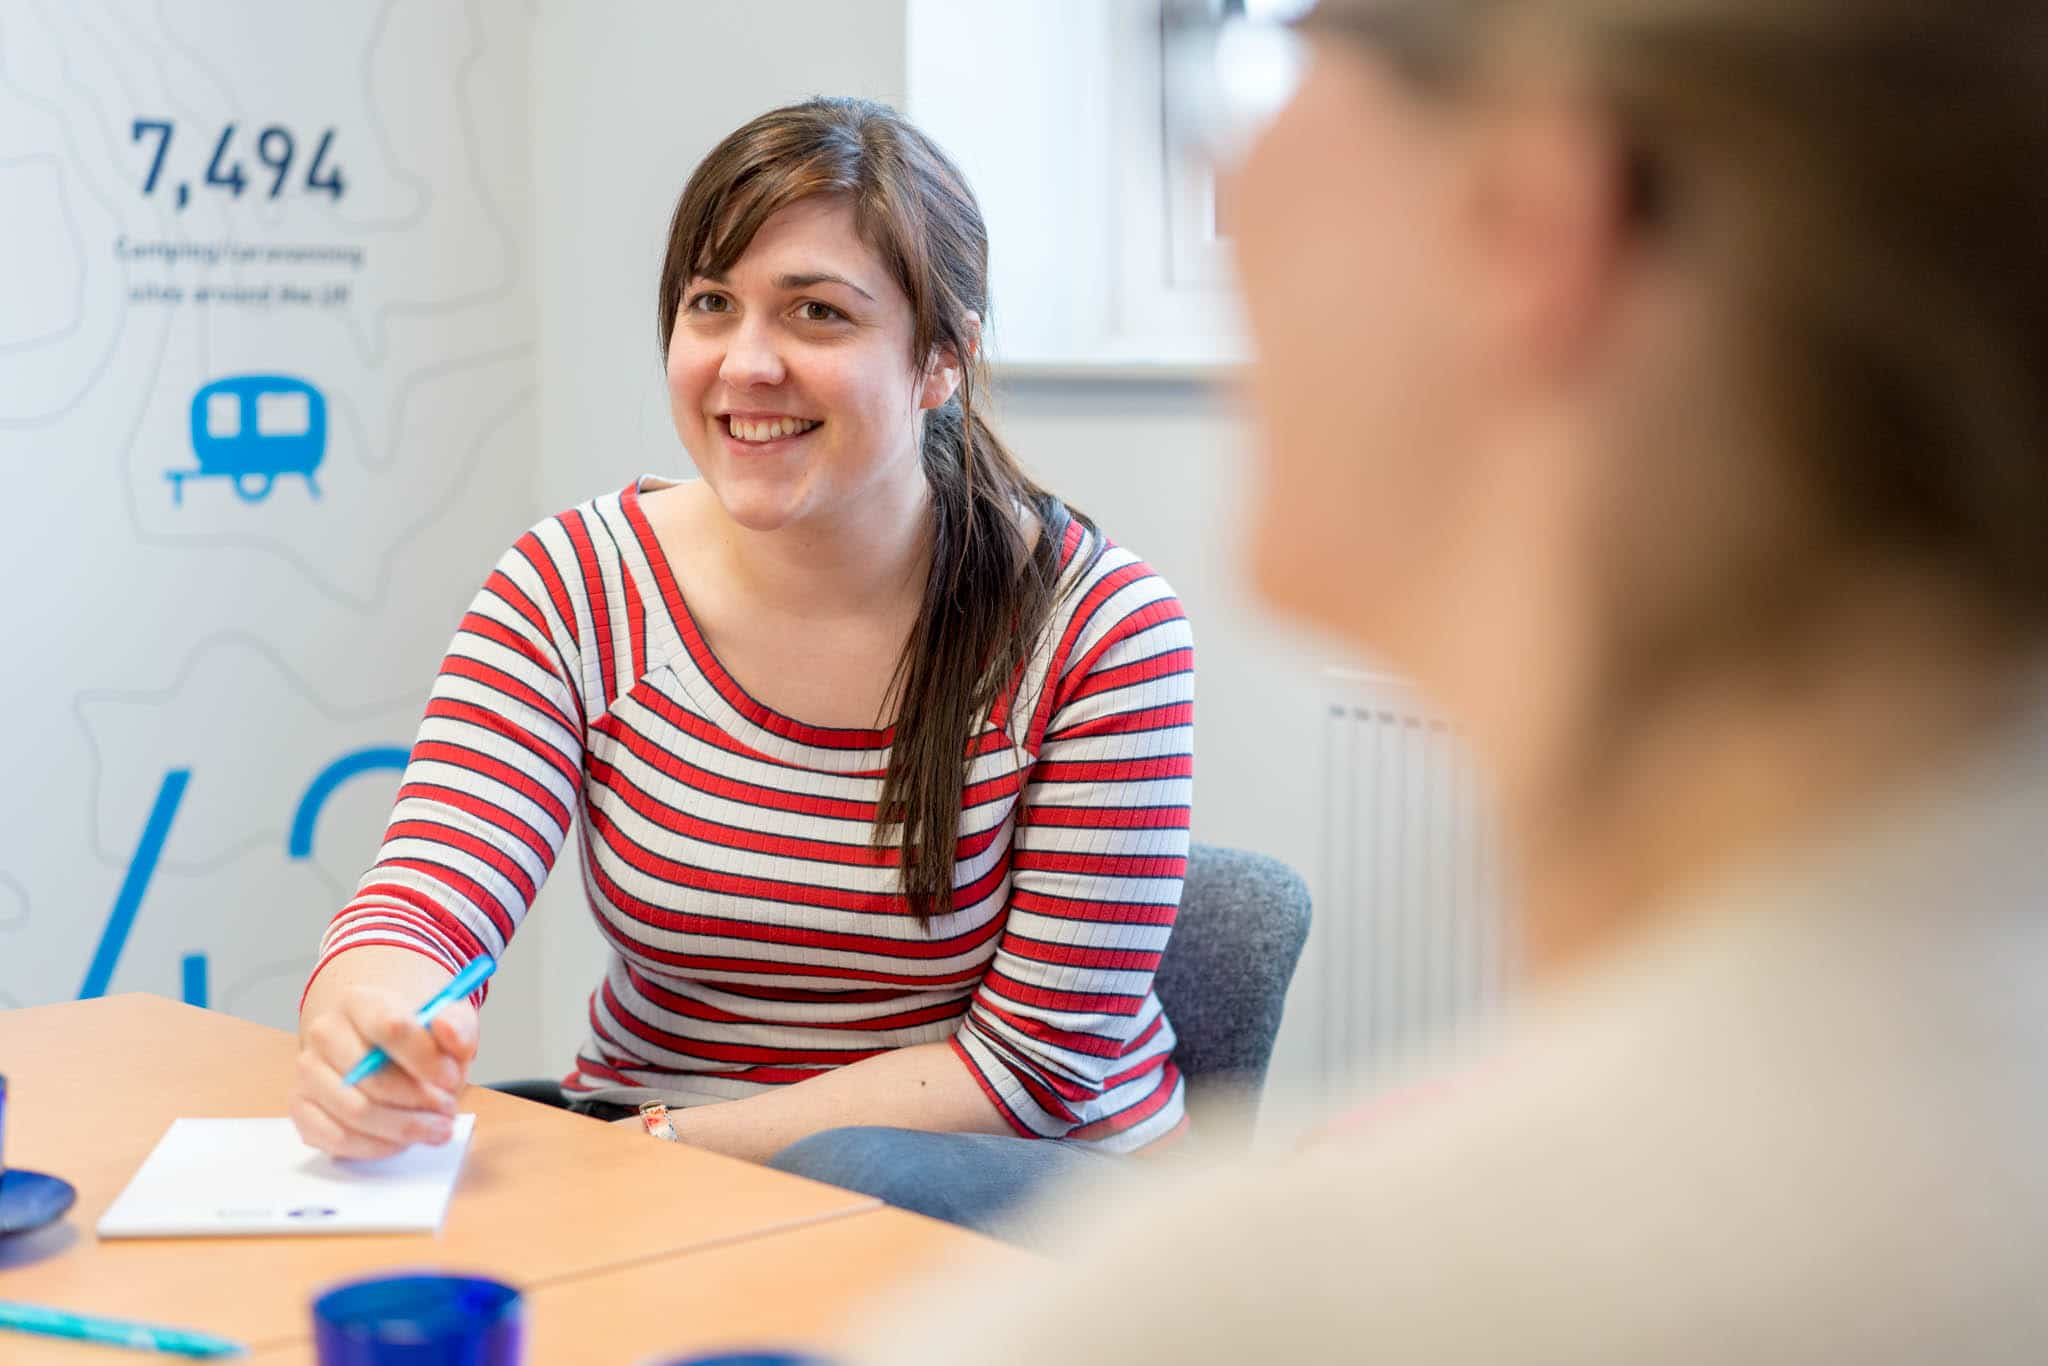 coronavirus financial support woman in stripy top smiling